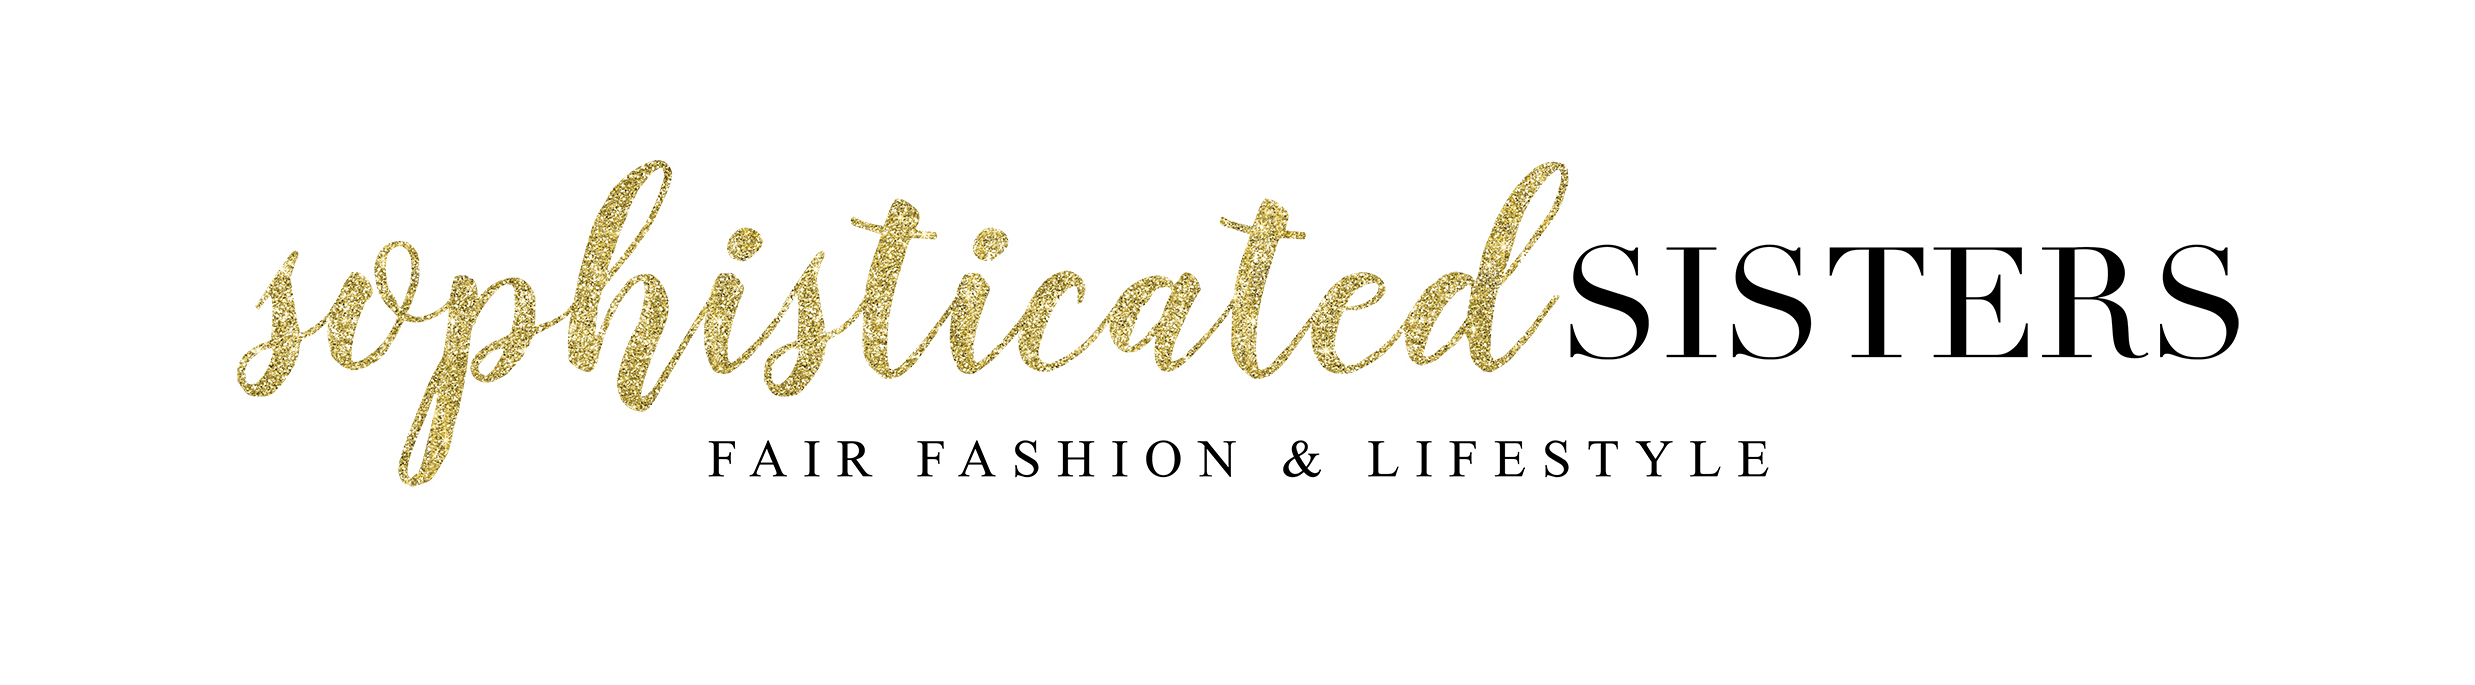 SOPHISTICATED SISTERS - FAIR FASHION & LIFESTYLE